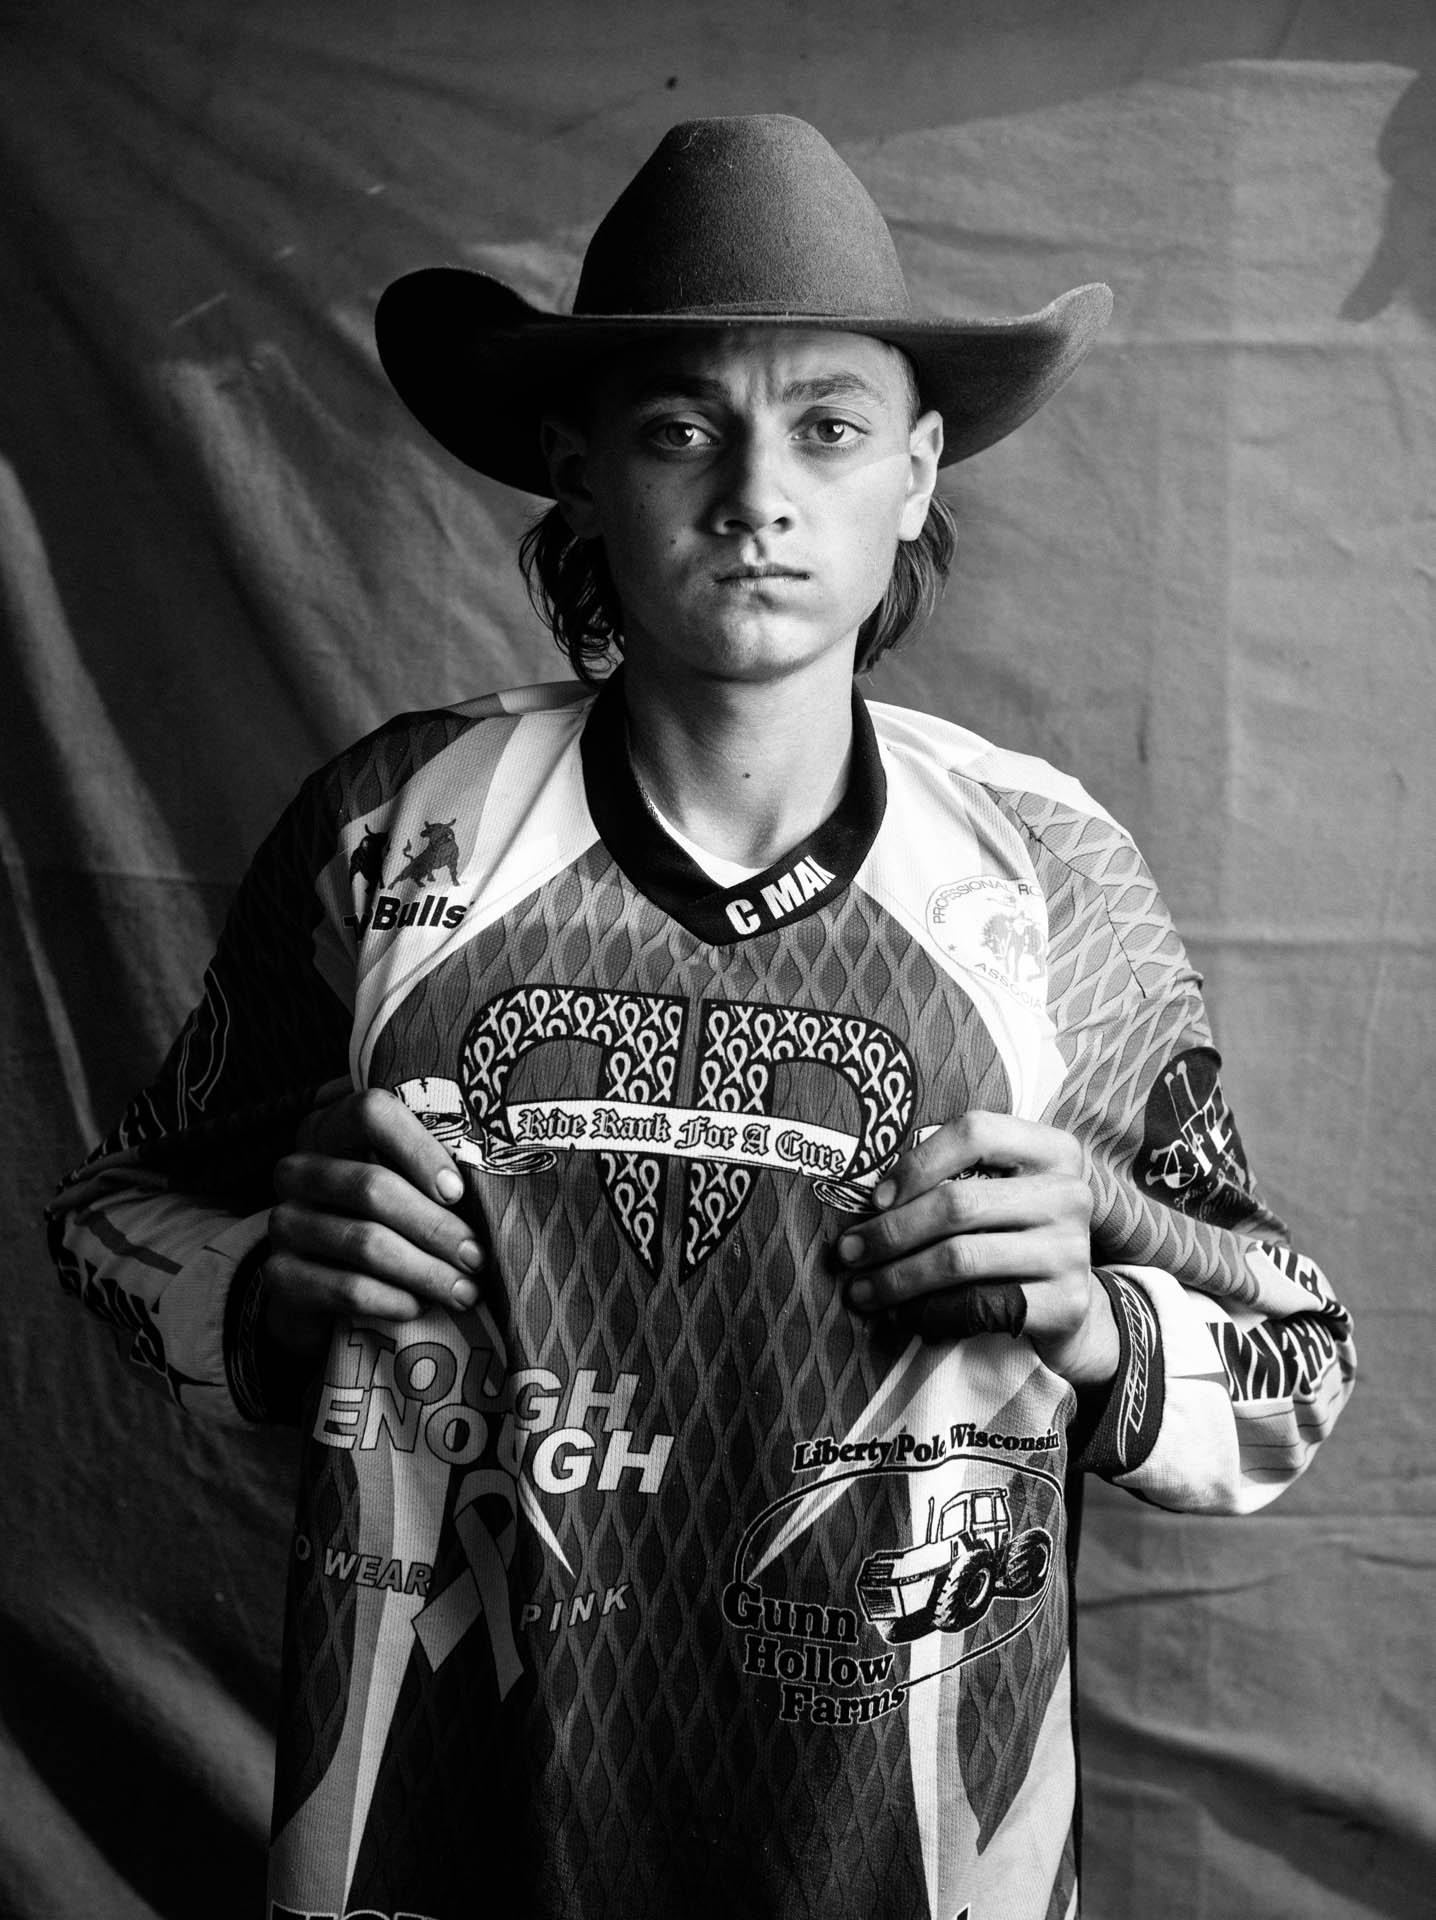 sawyer-bull-fighter-portrait.JPG